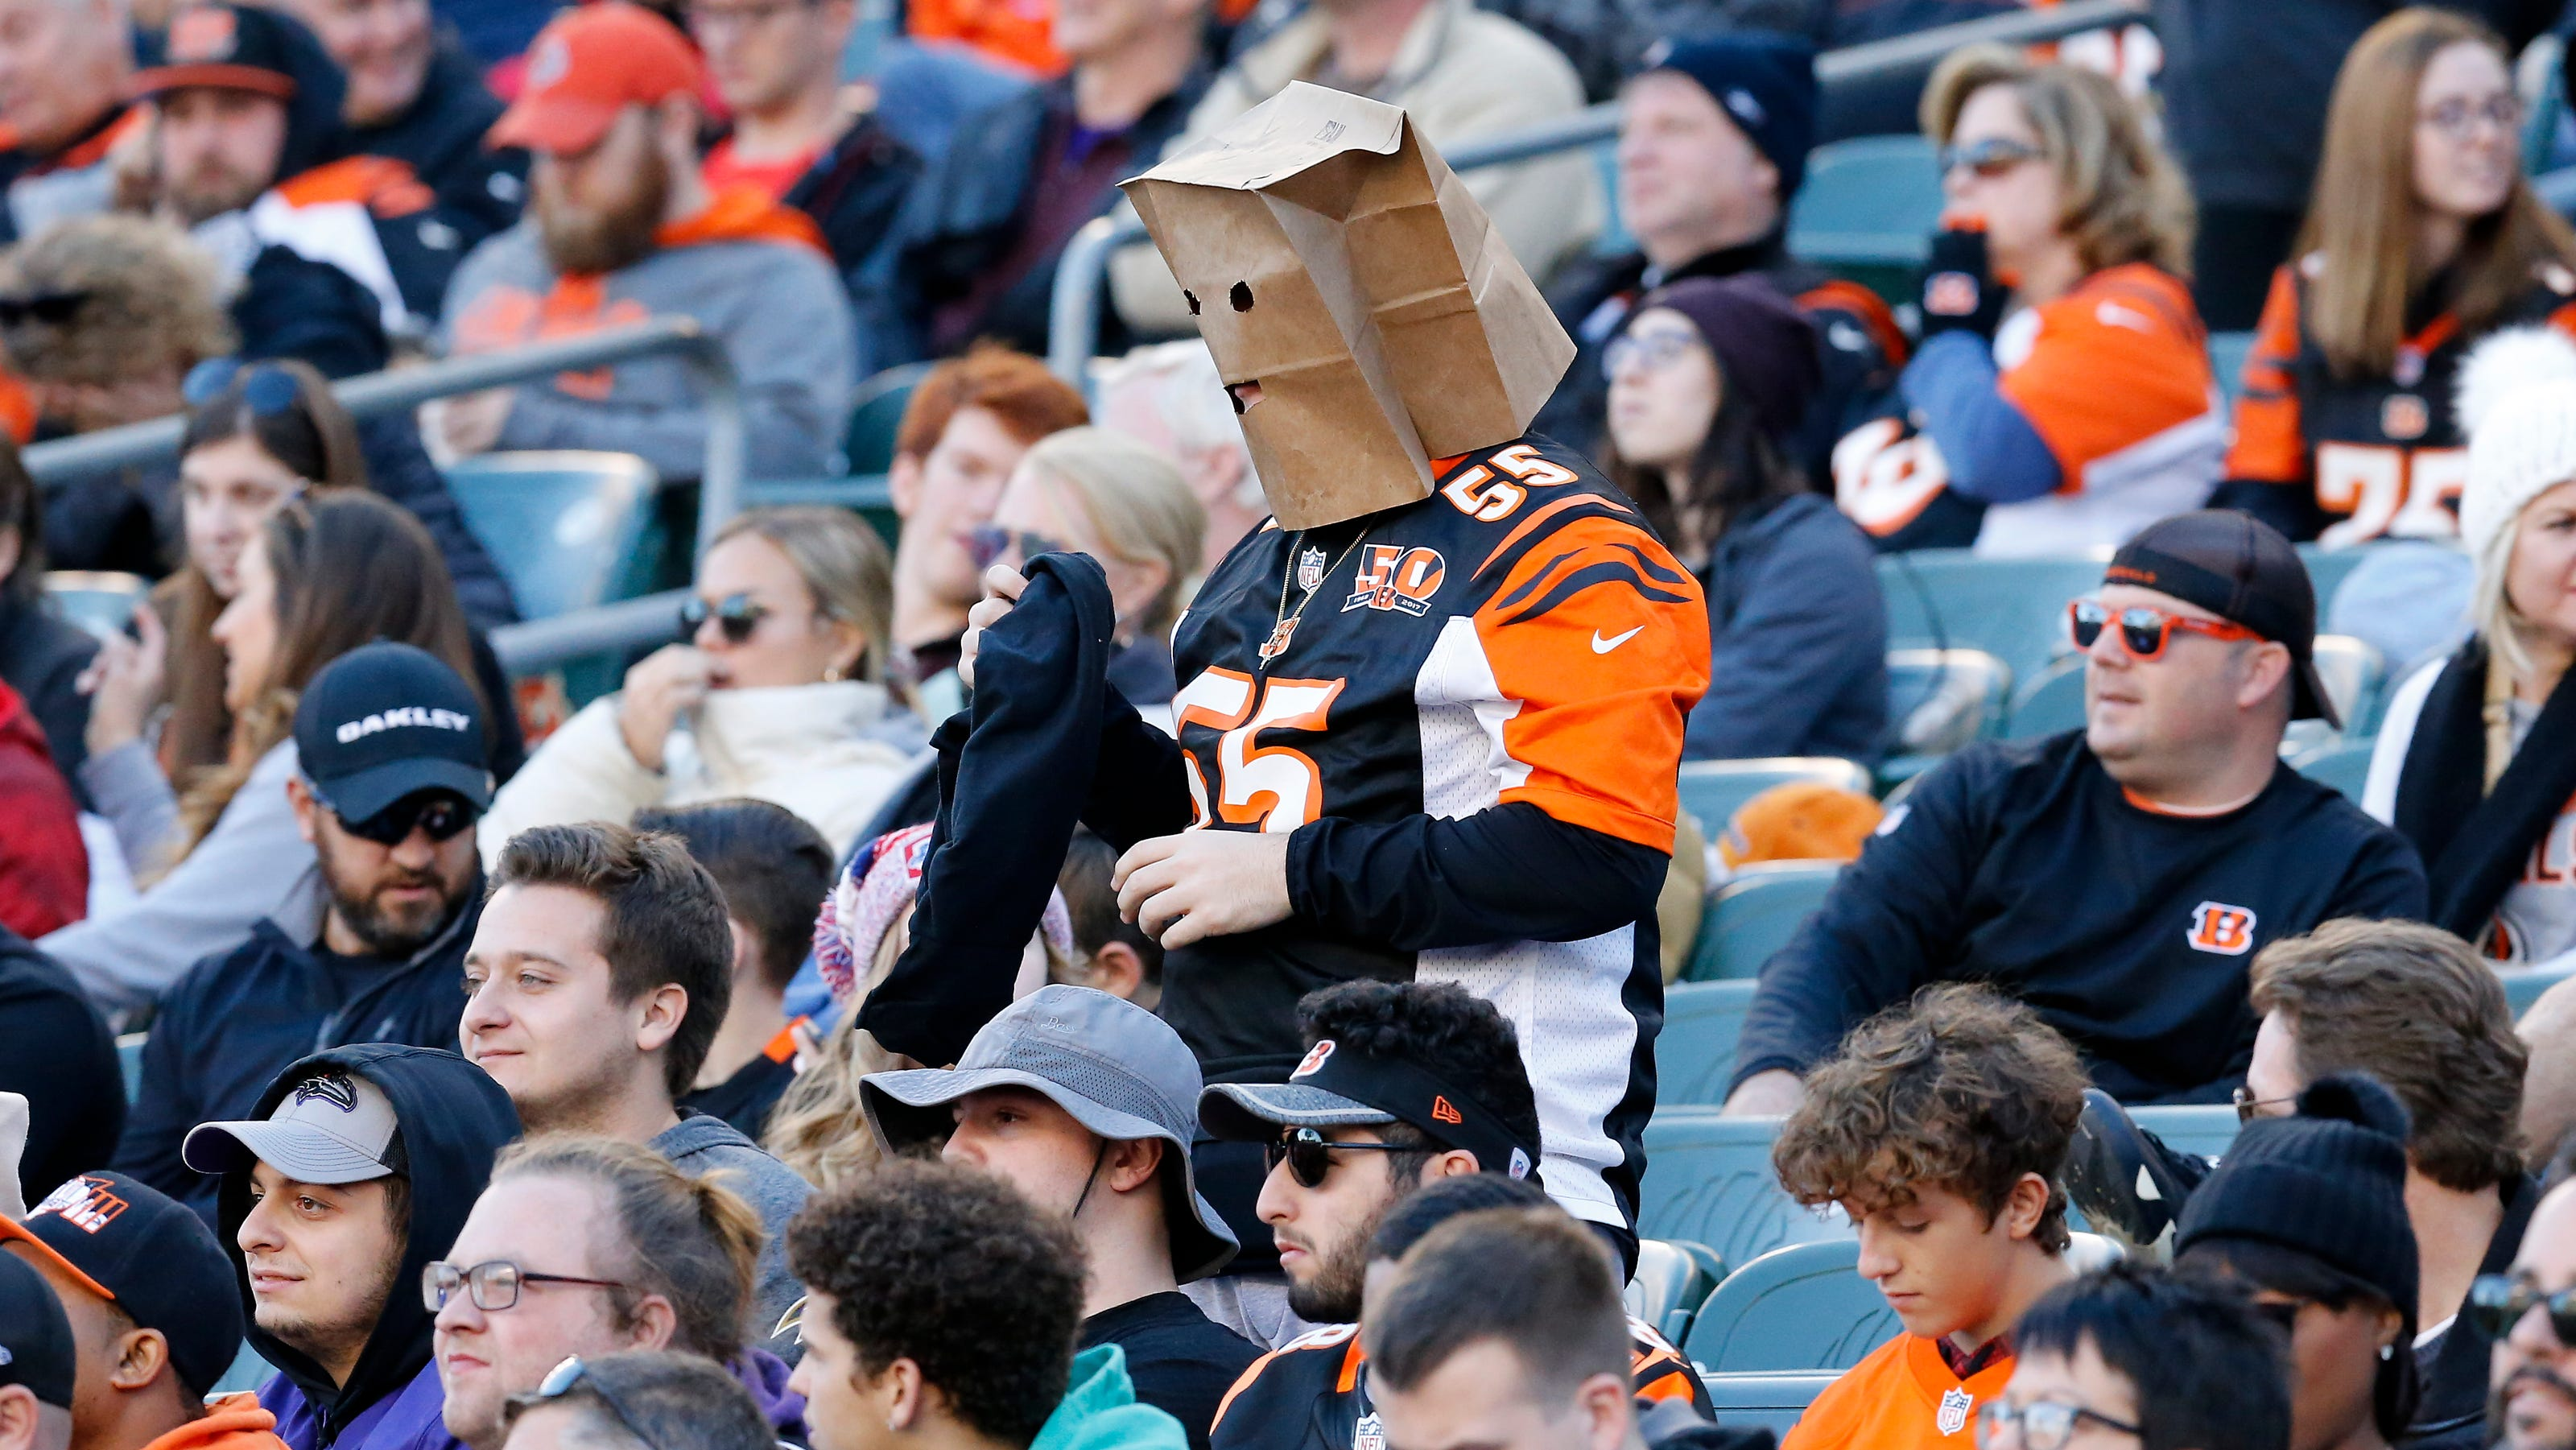 Cincinnati Bengals: What fans say about improved game day experience